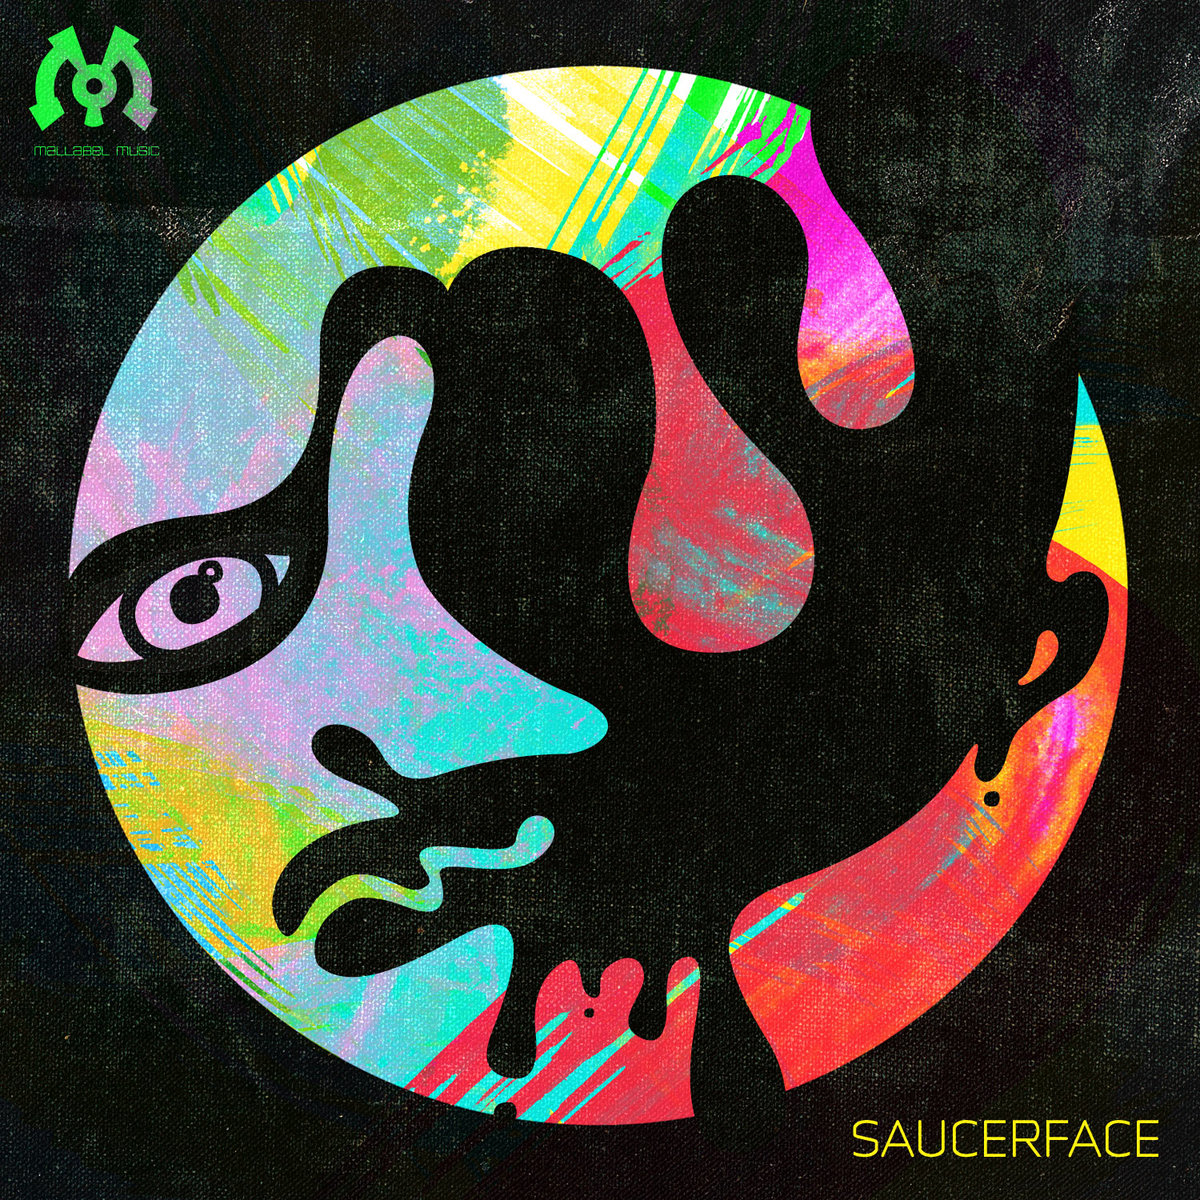 Various Artists - Saucerface @ 'Various Artists - Saucerface' album (electronic, dubstep)